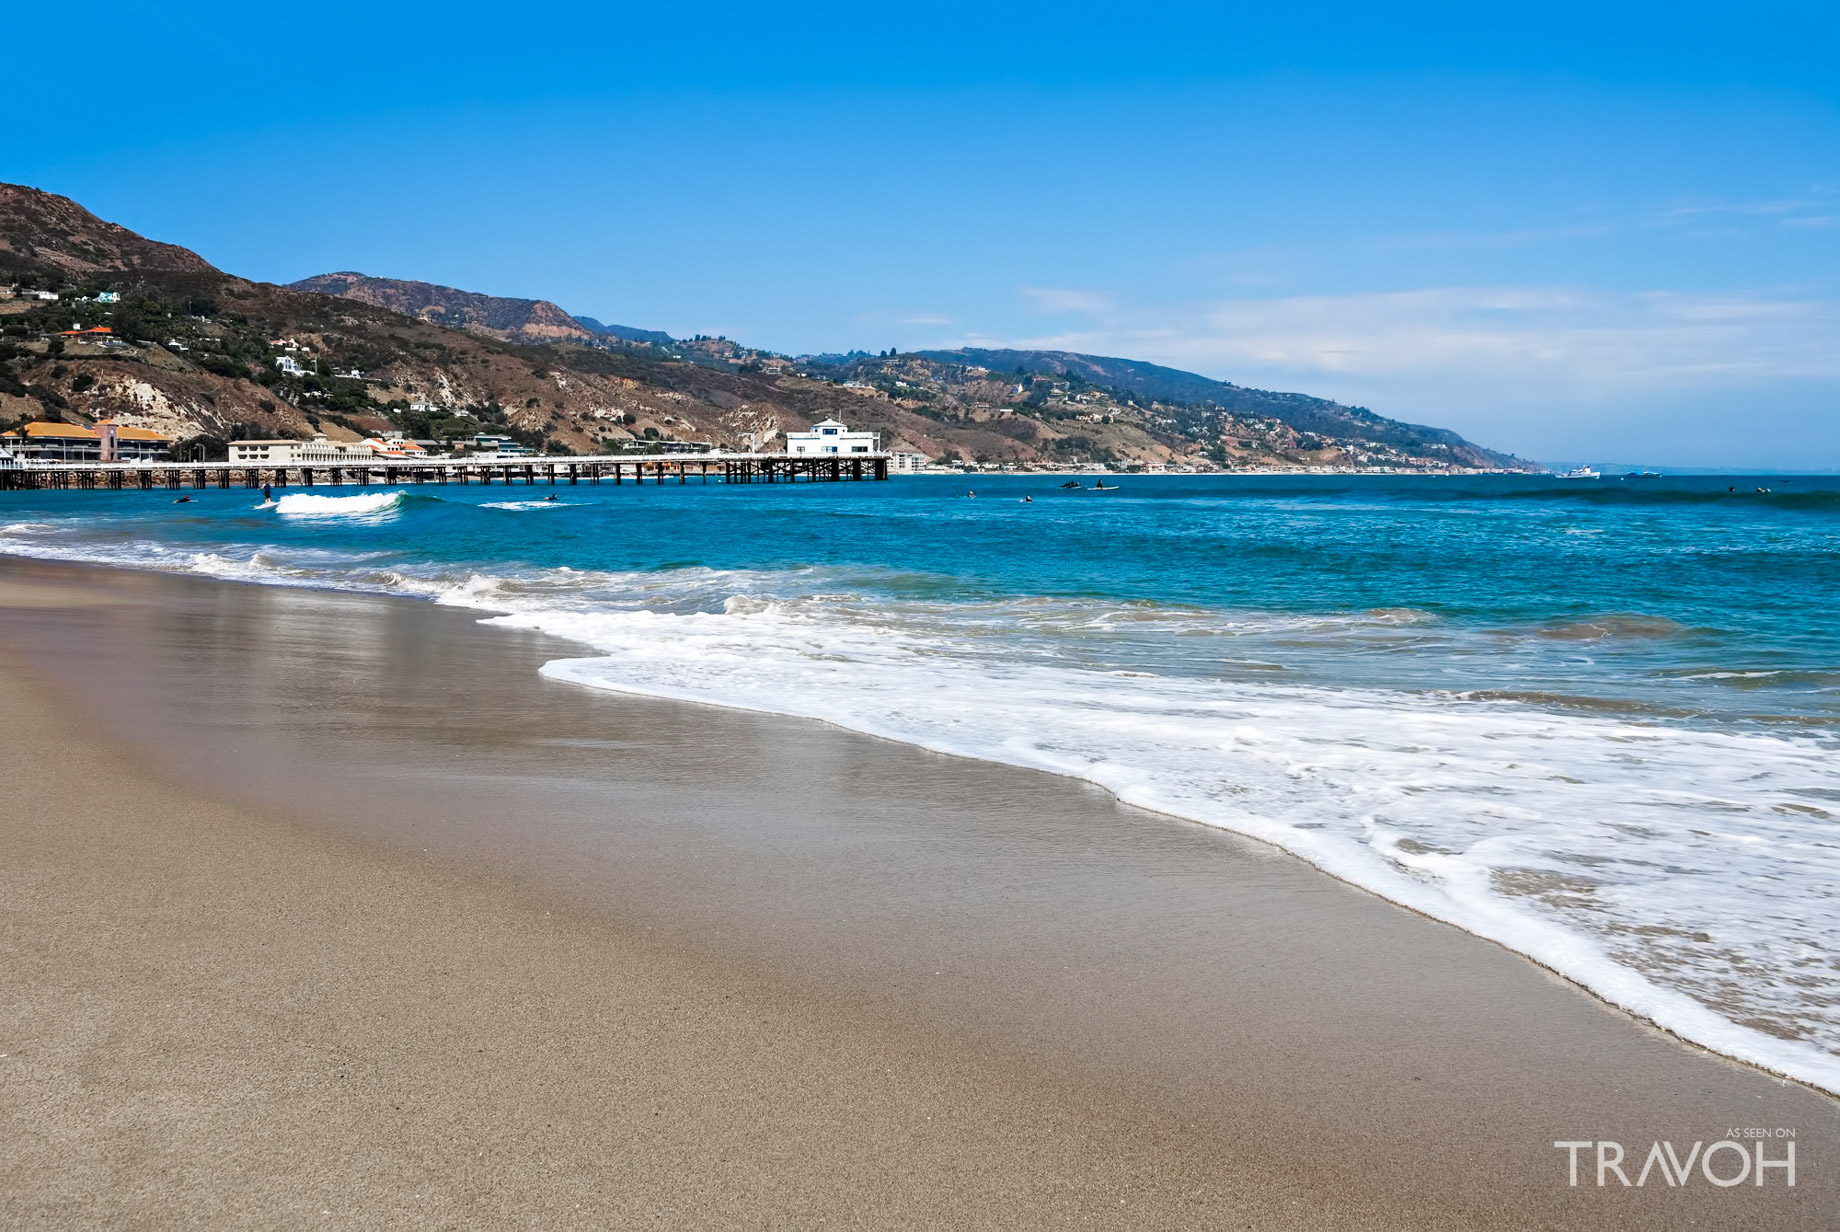 Surfrider Beach - Exploring 10 of the Top Beaches in Los Angeles, California